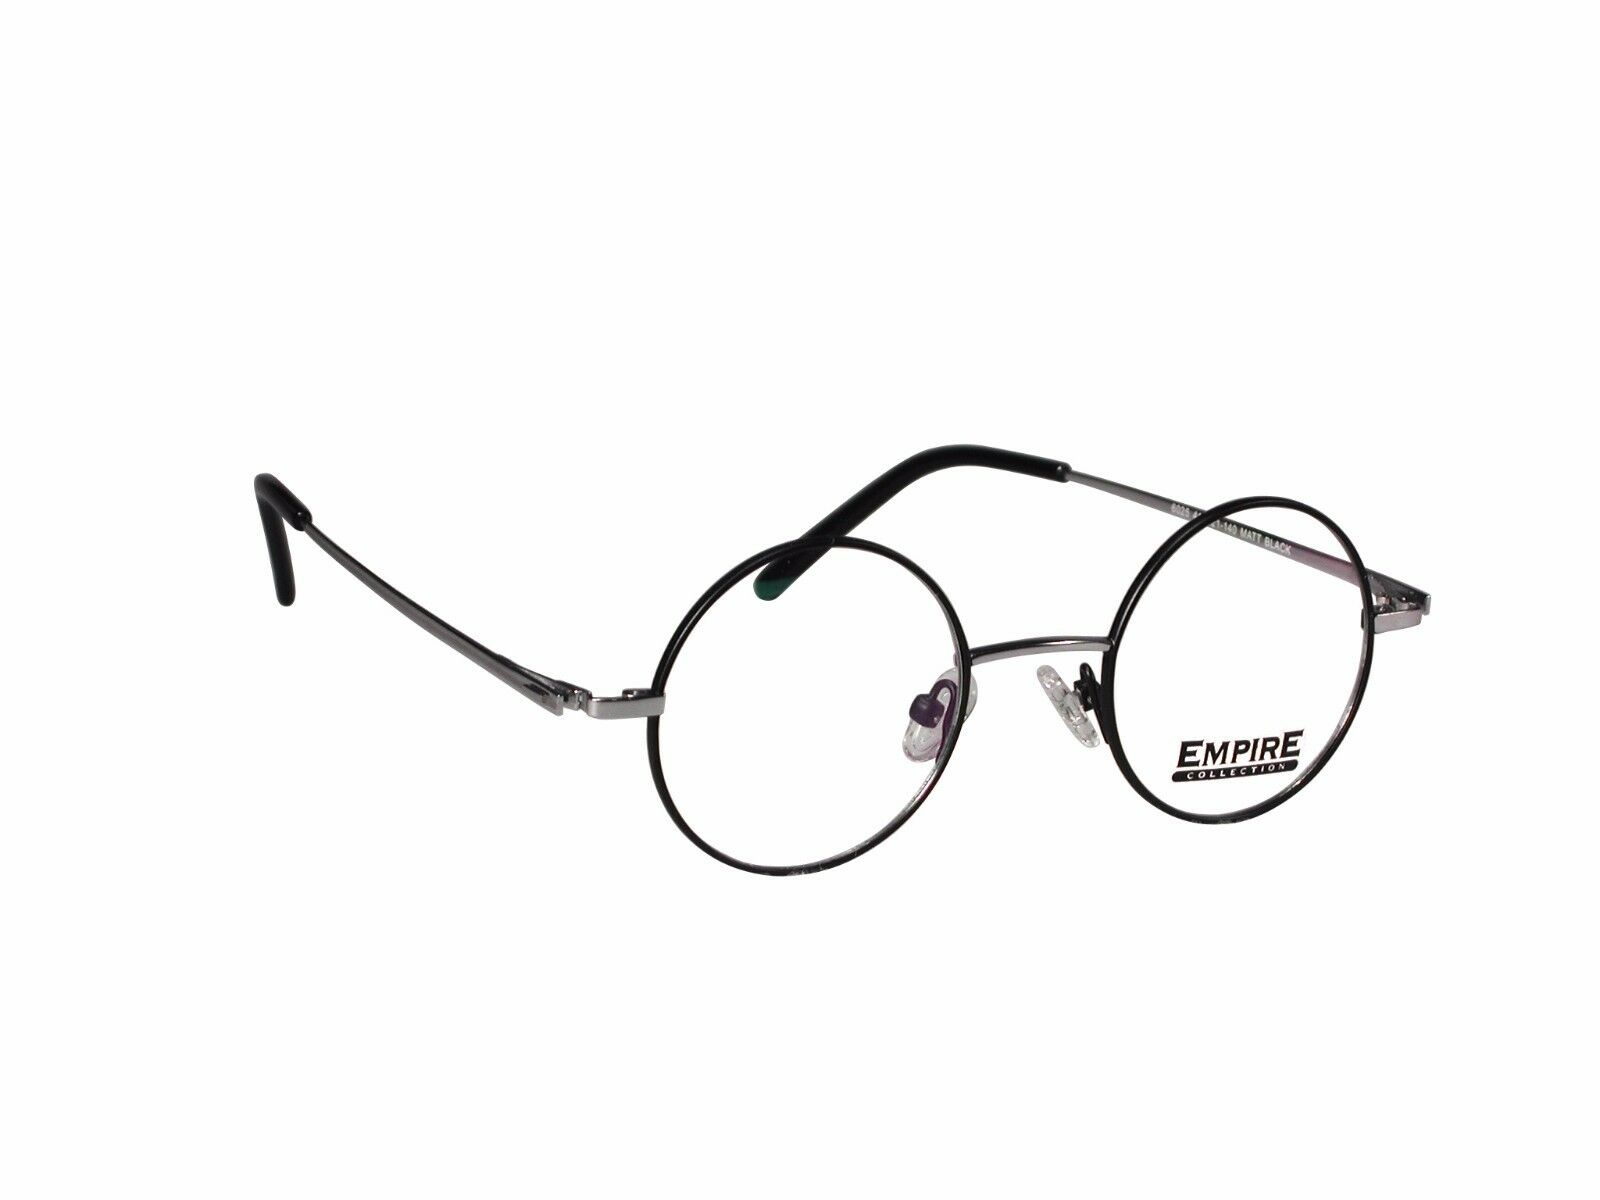 EYEGLASS FRAMES GLASSES Men Woman Flexible Titanium Retro Oval John ...